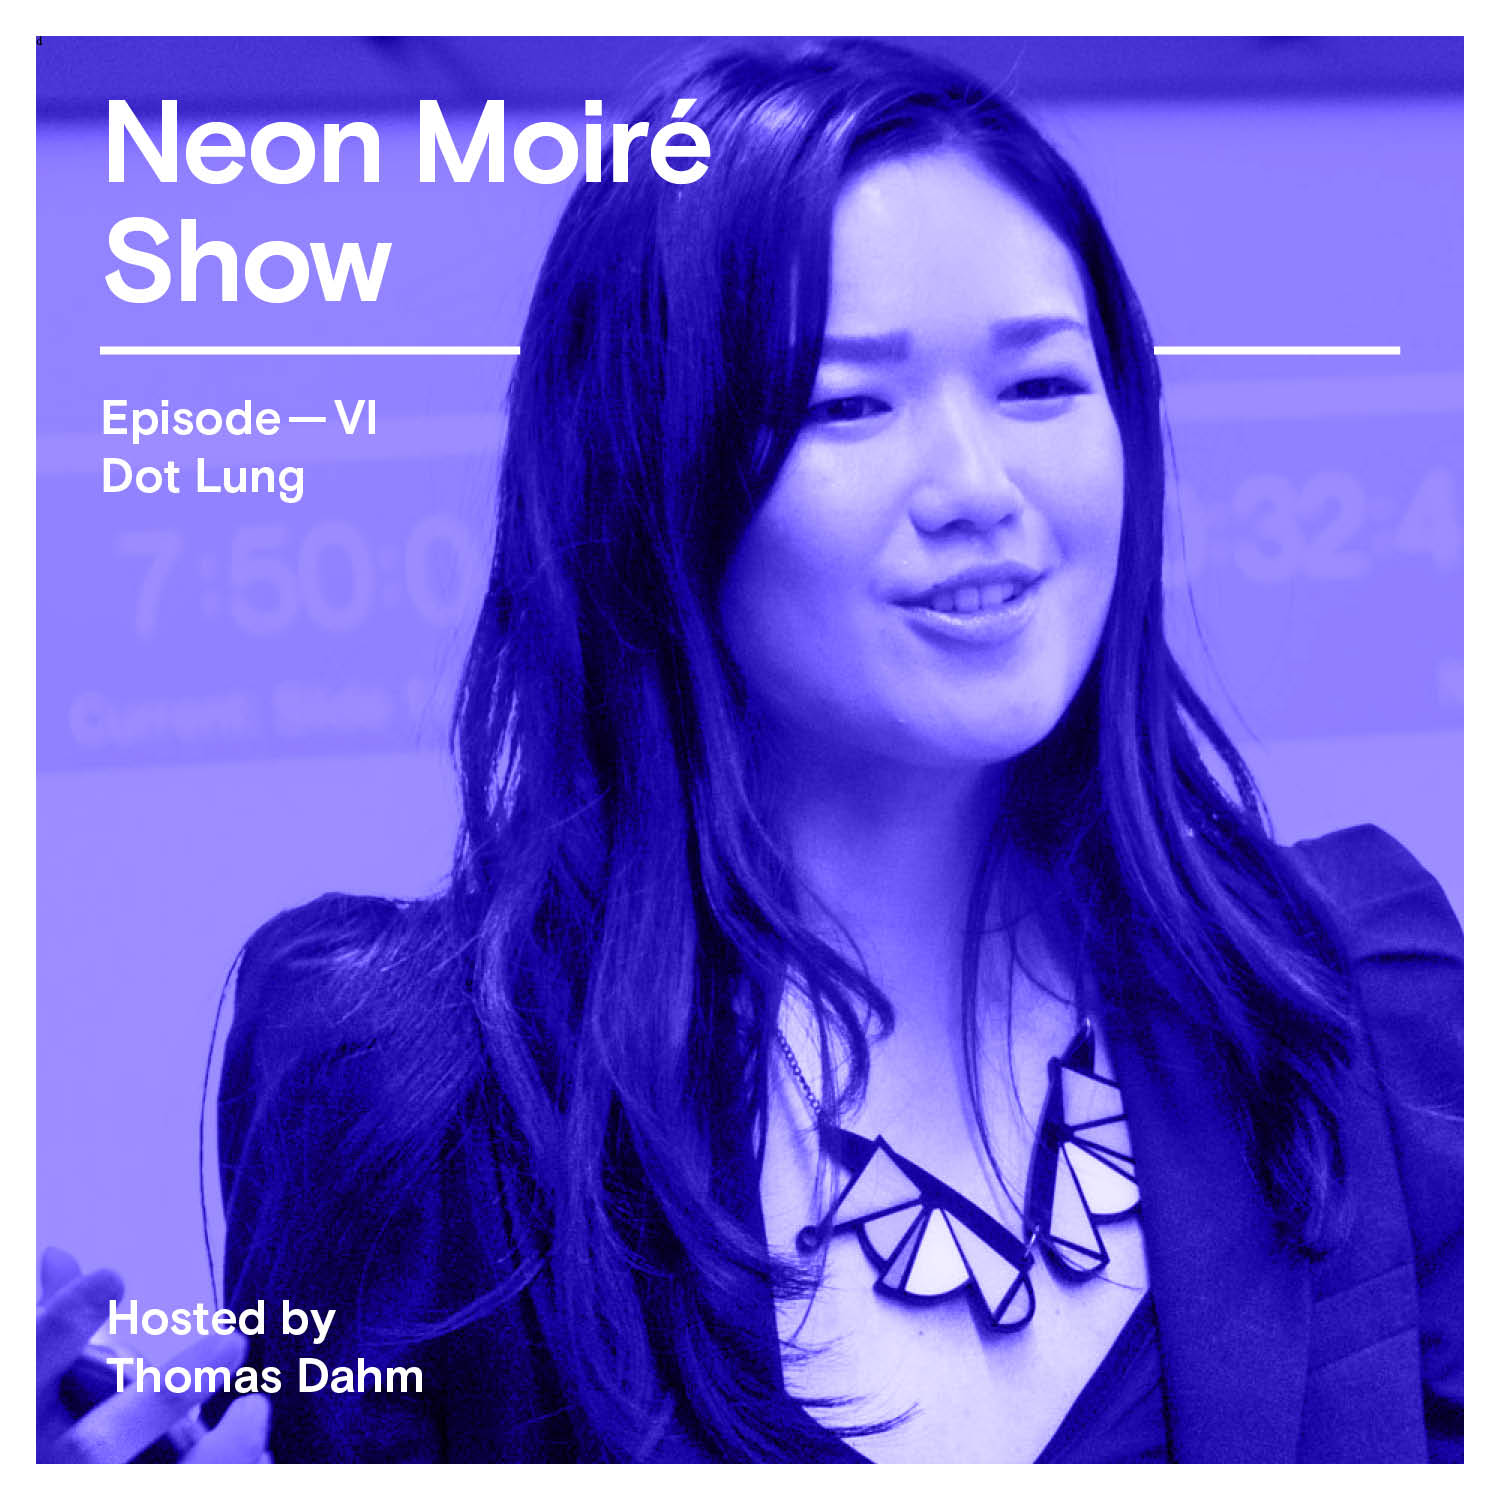 Neon Moiré Show with Dot Lung